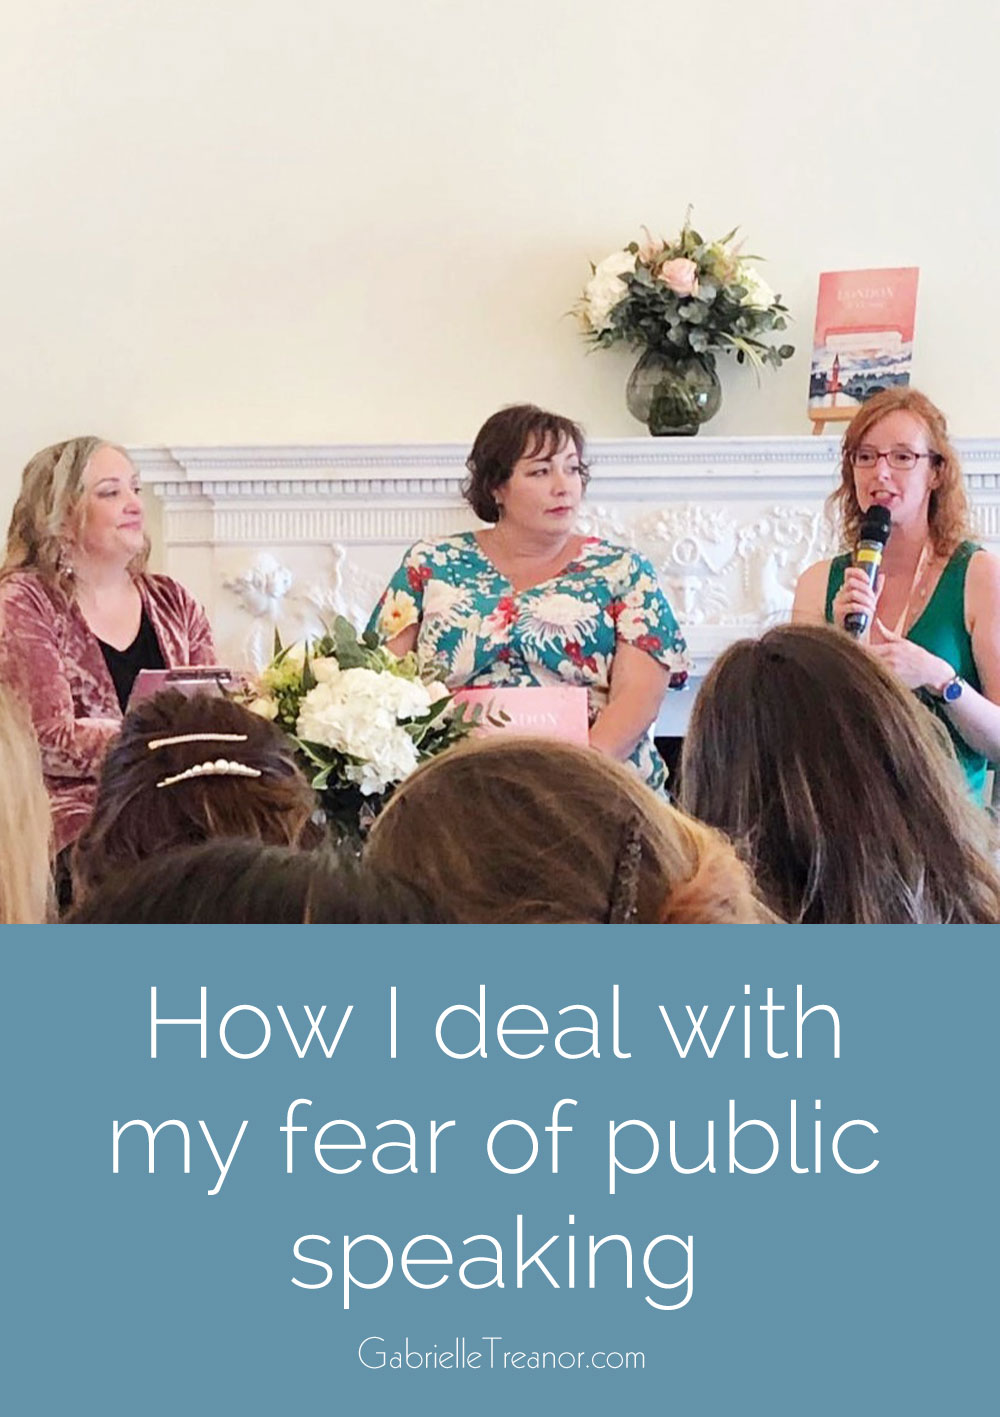 How I deal with my fear of public speaking